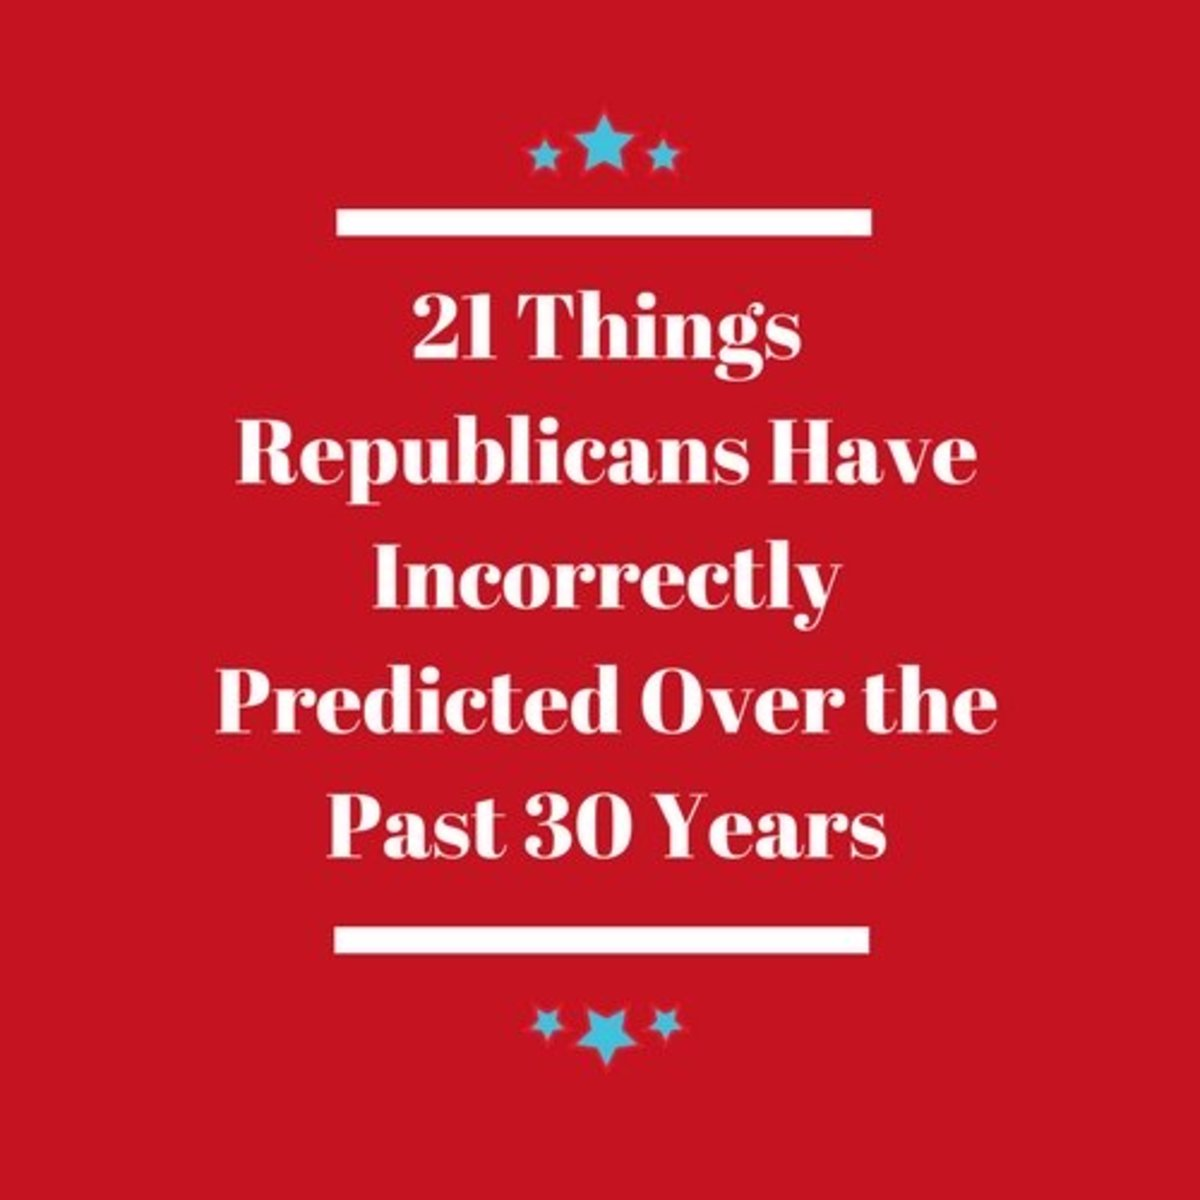 21 Truths That Prove Republicans Have Been Wrong About Everything